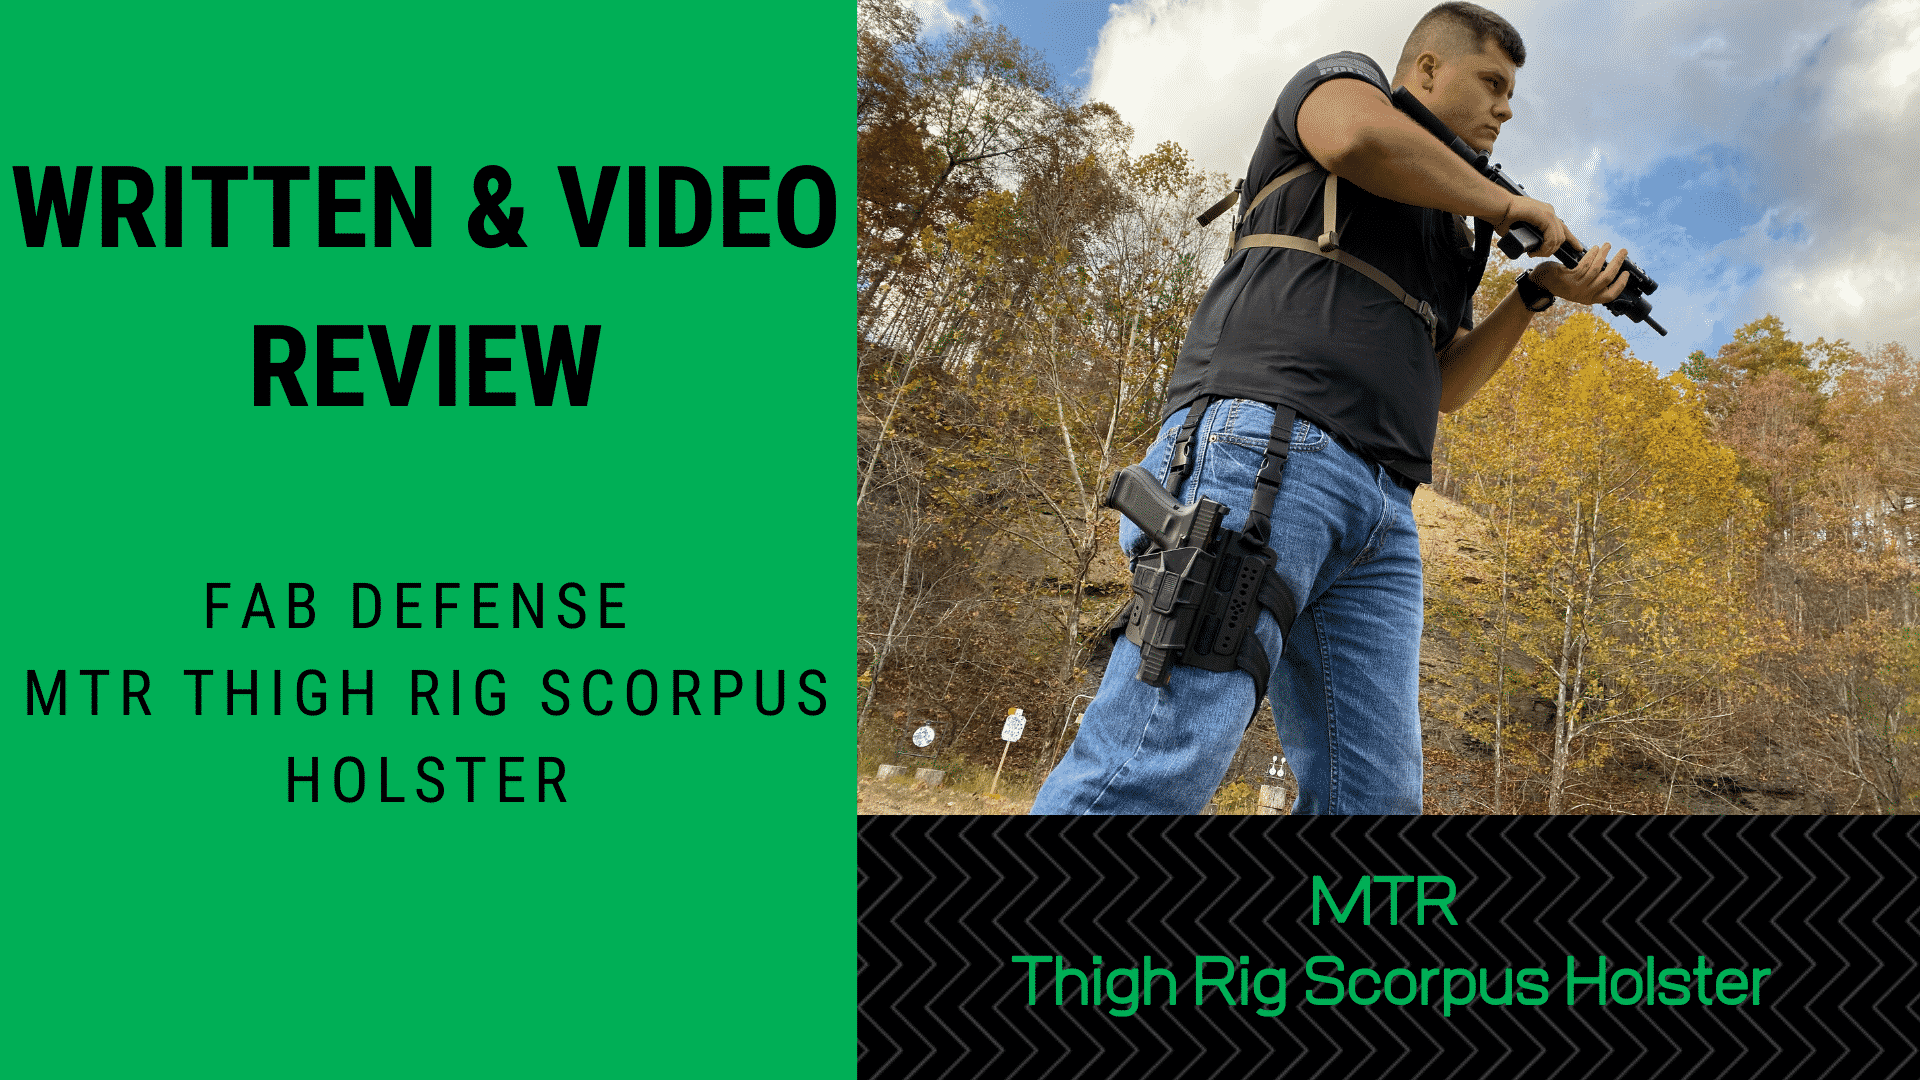 Written & Video Review Fab Defense MTR Thigh Rig Scorpio's Holster